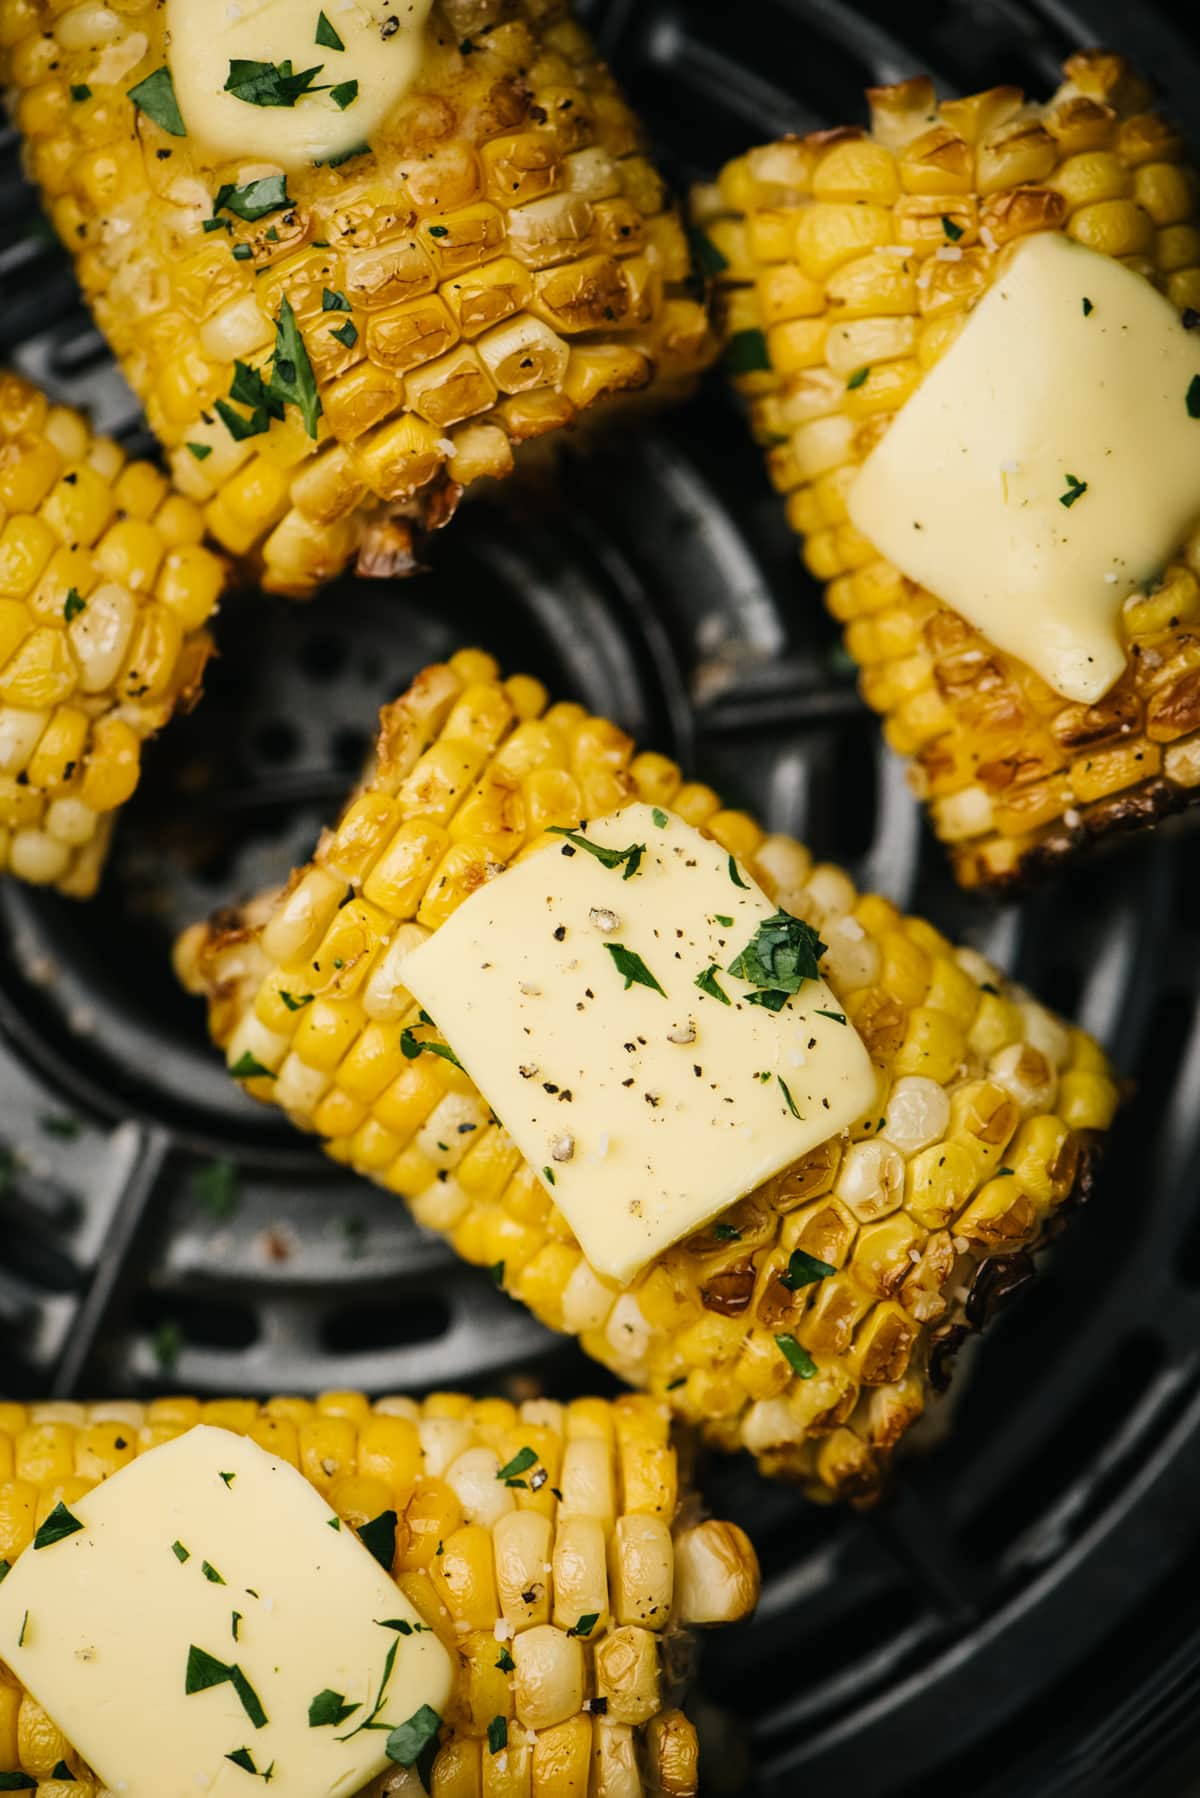 Air fryer corn on the cob in a single layer, topped with butter and fresh herbs.